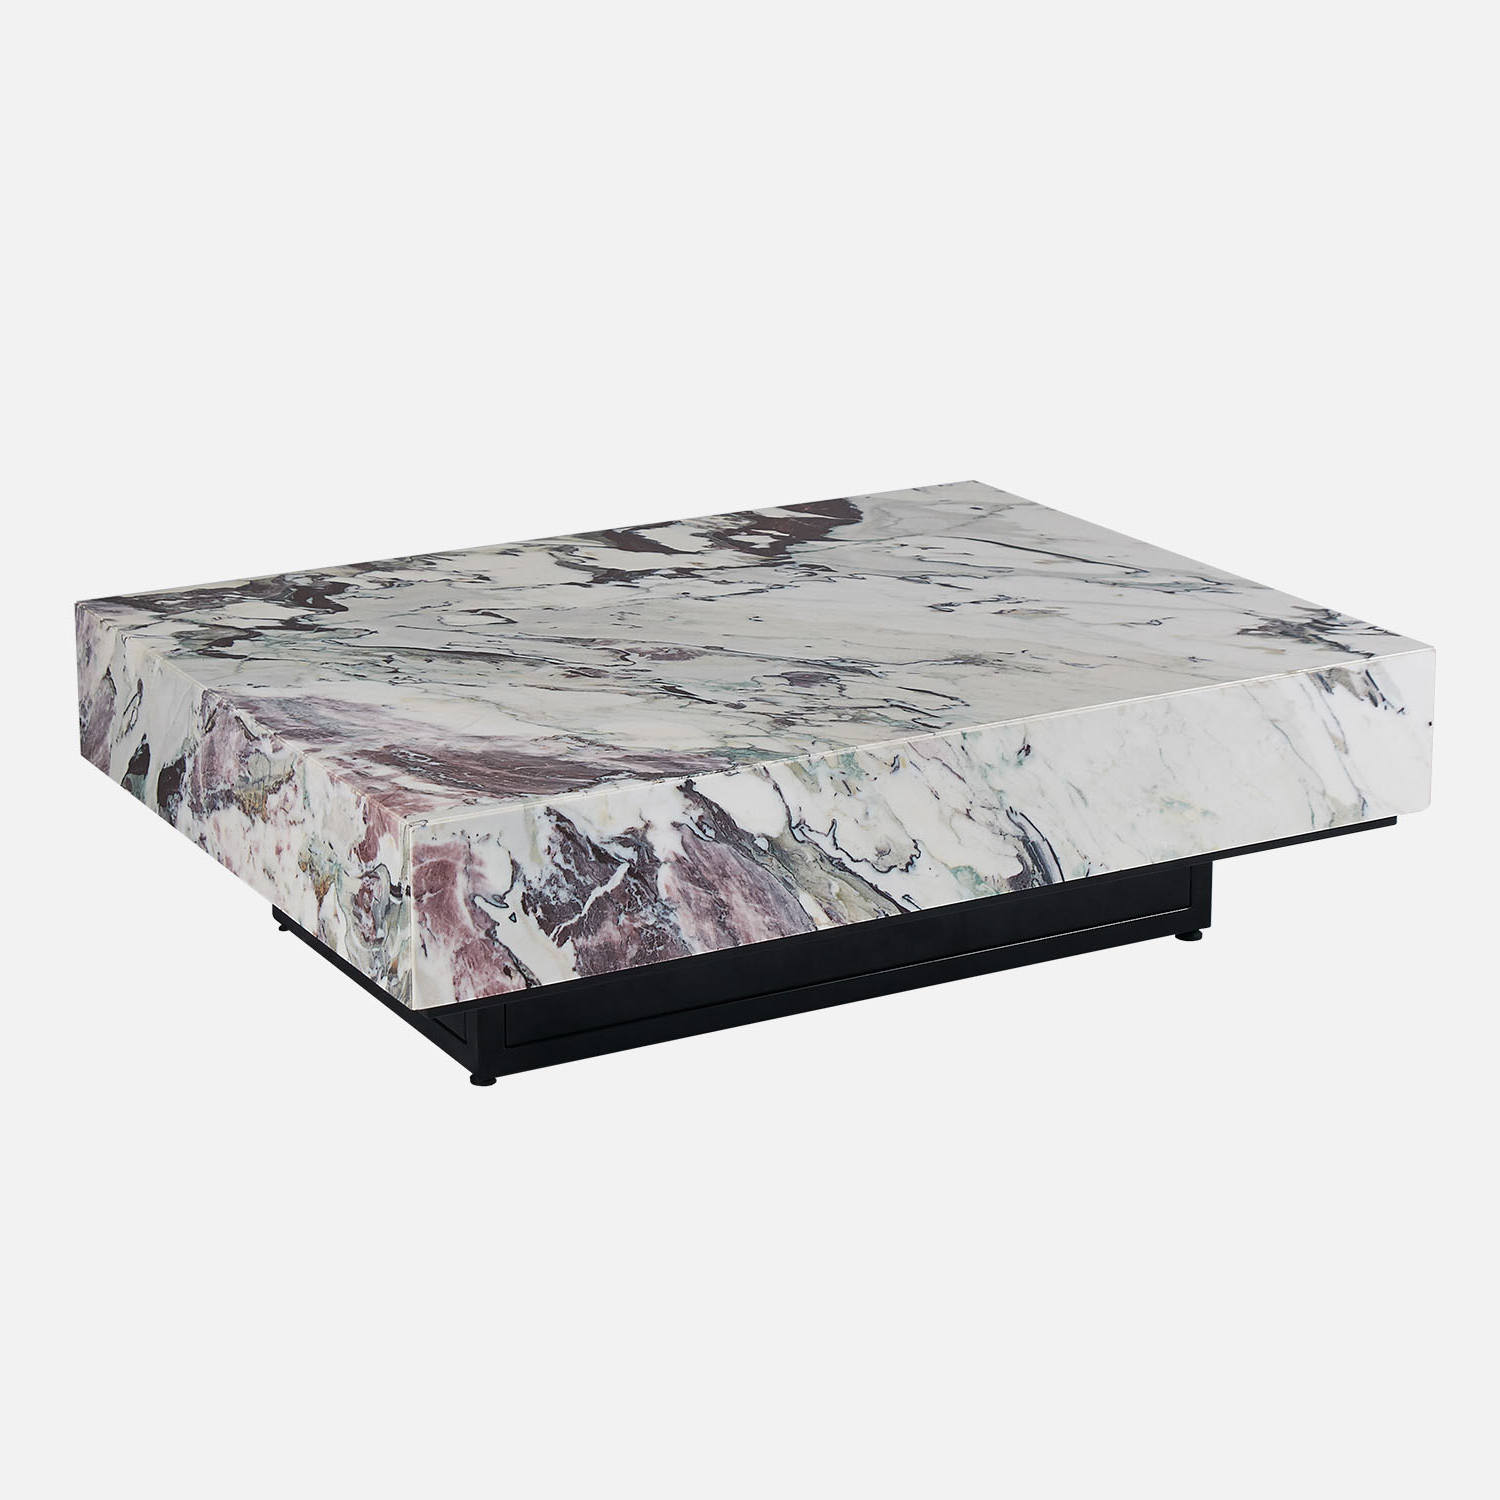 Breccia C Marble Coffee Table Pertaining To Popular Marble Coffee Tables (View 3 of 20)